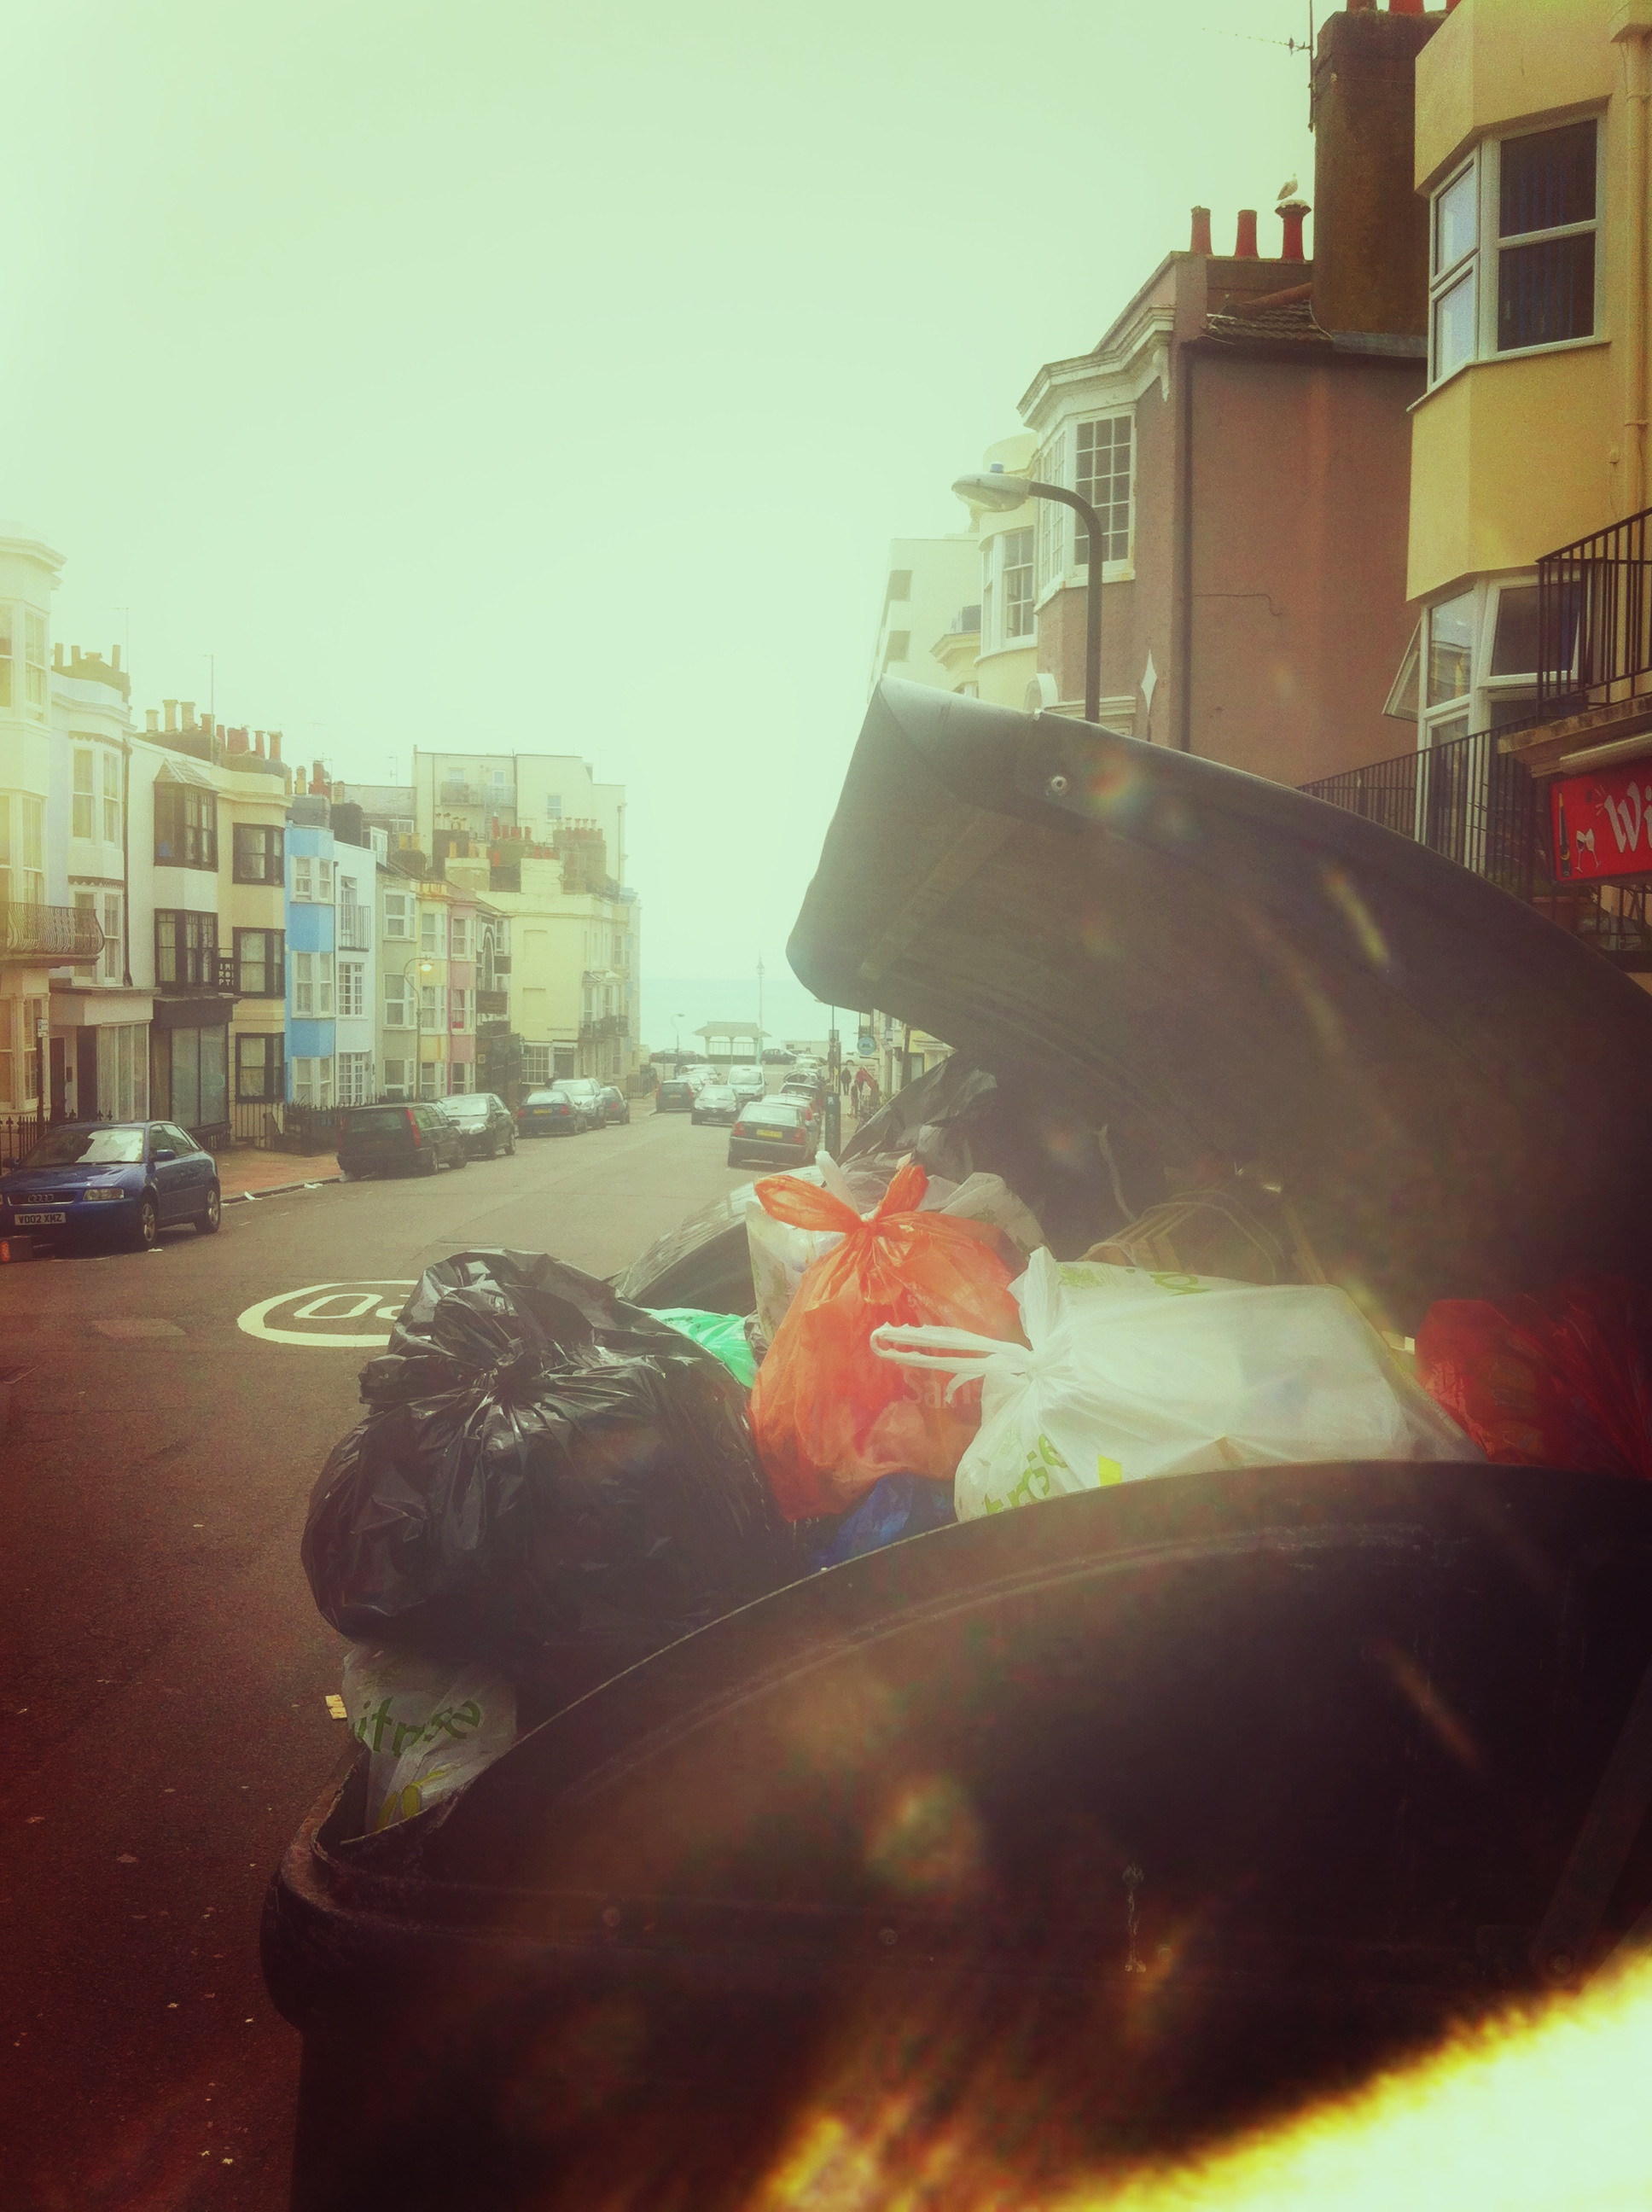 Brighton And Hove - Binmen Strike 2013 - Western Street Rubbish